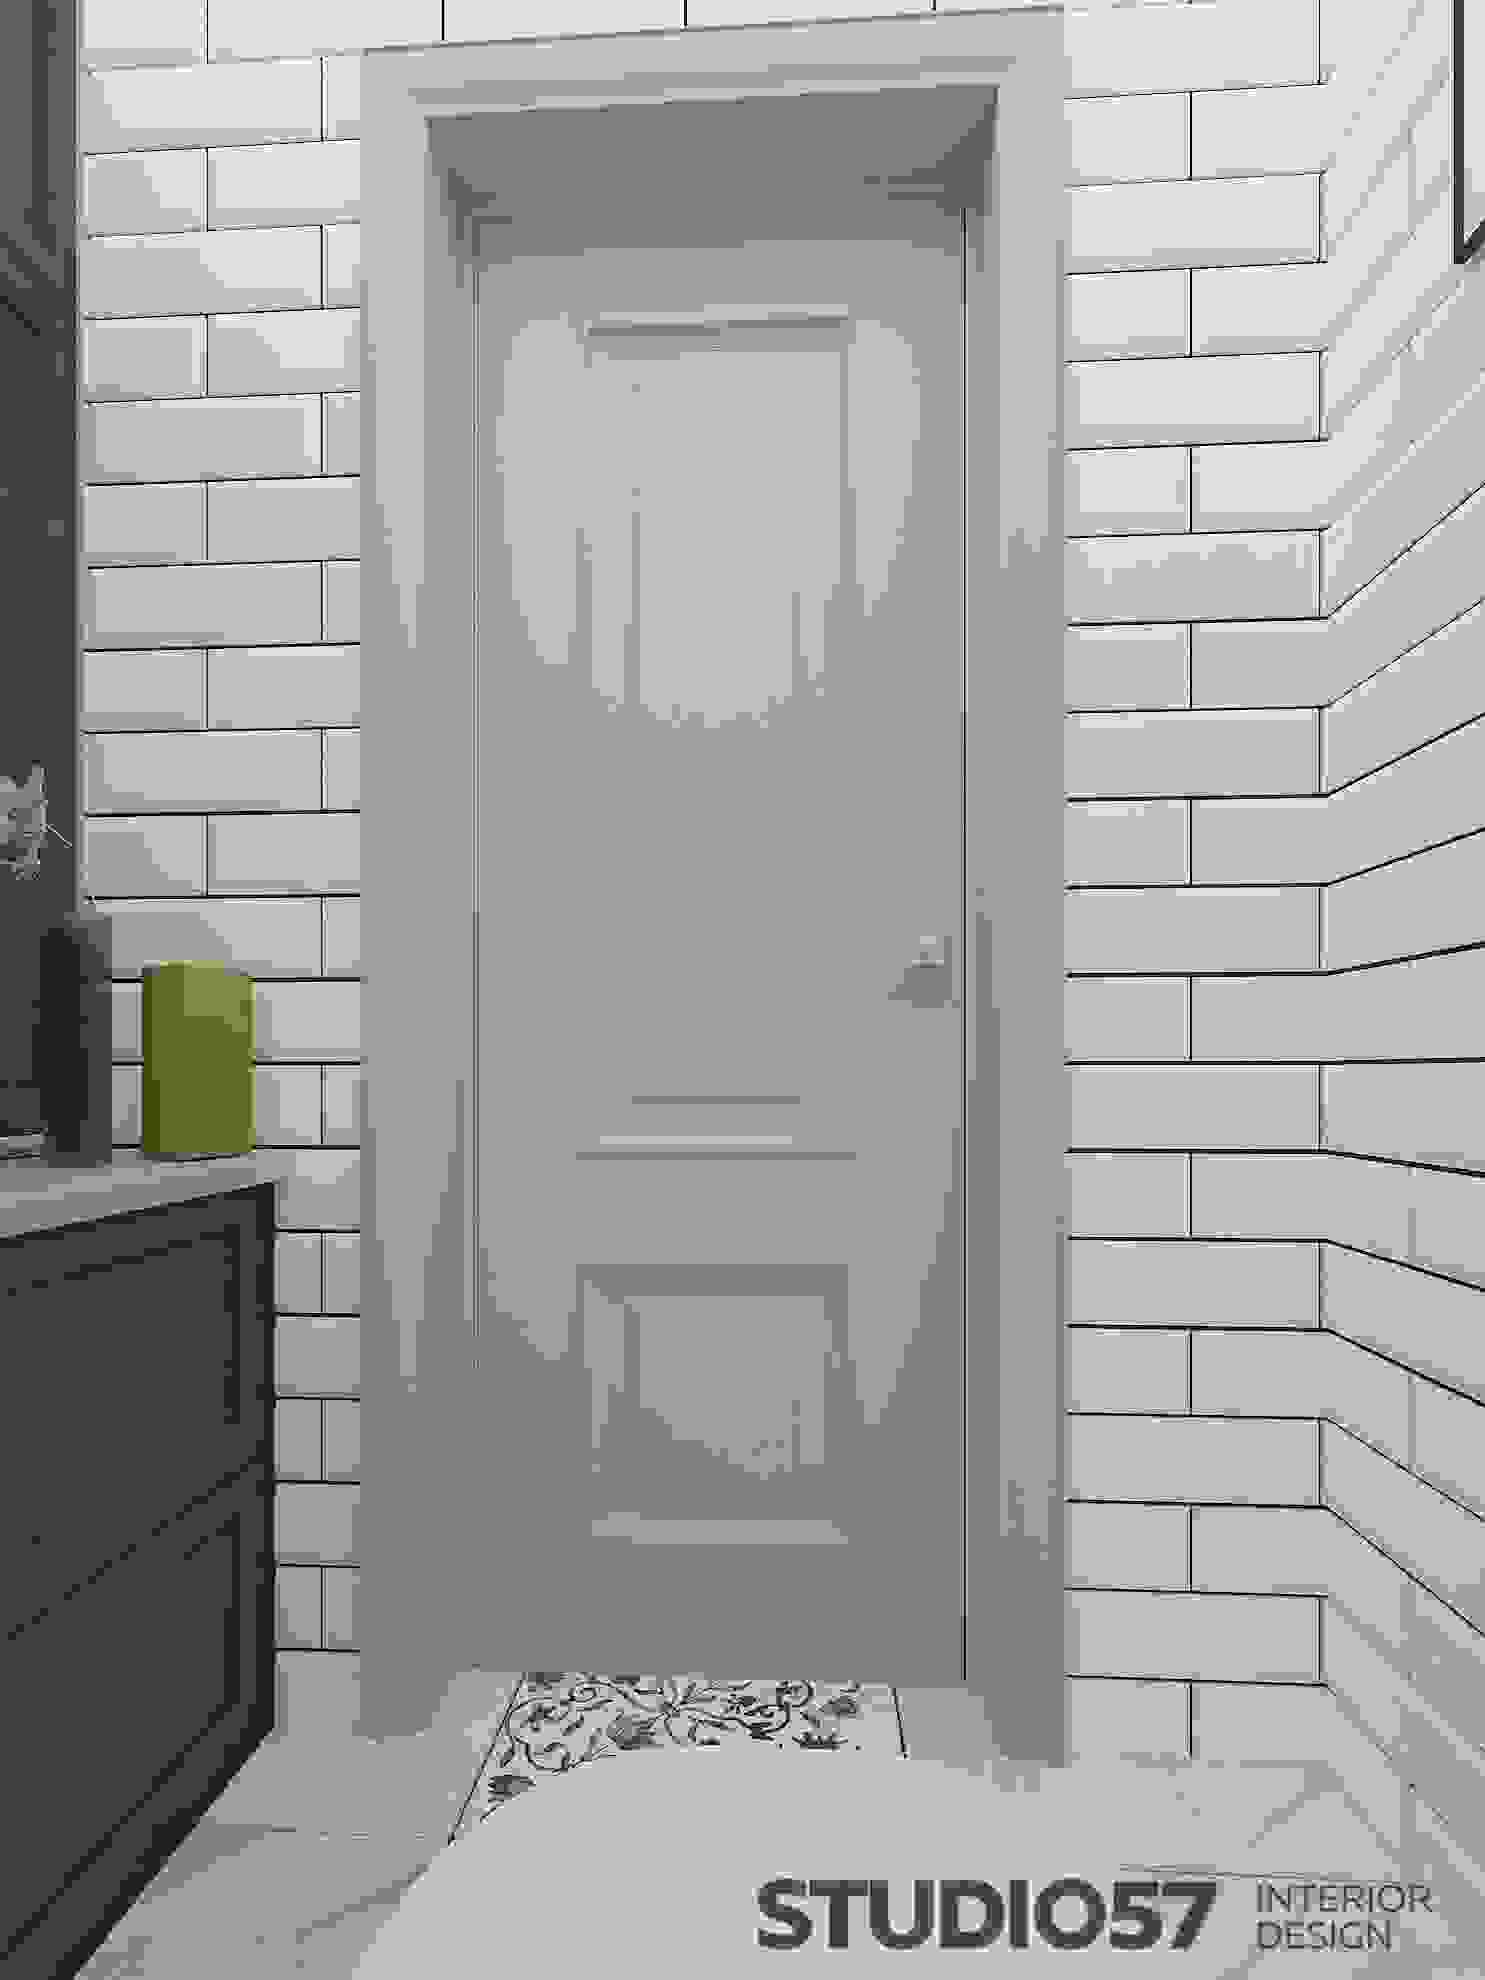 Interior design of the toilet in the style of a contemporary image